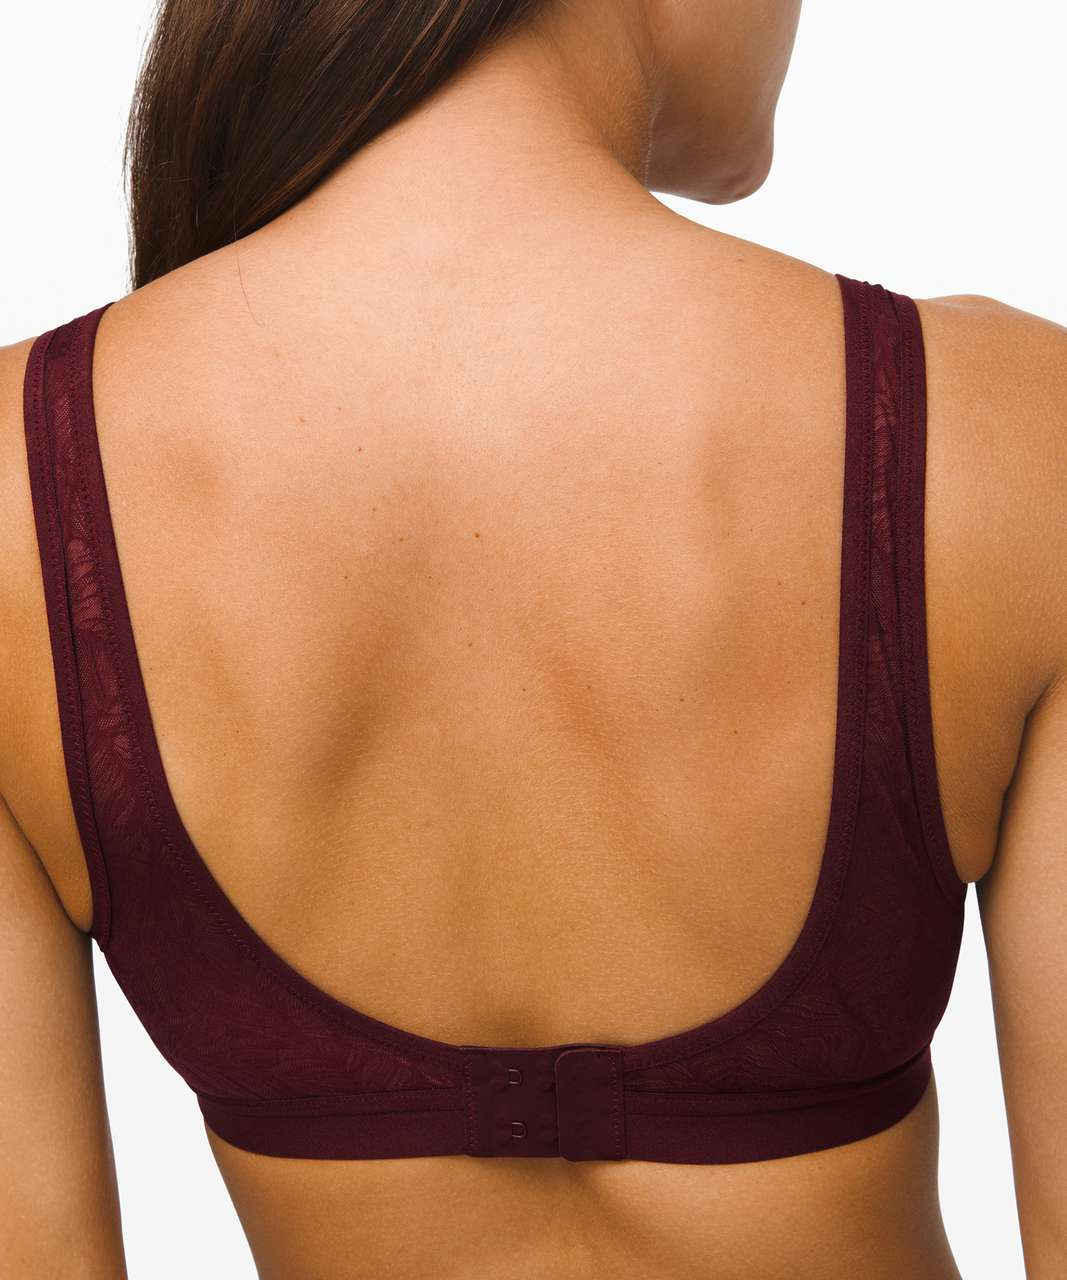 Lululemon Shadow Mesh Bra *Leaf - Garnet / Moss Rose